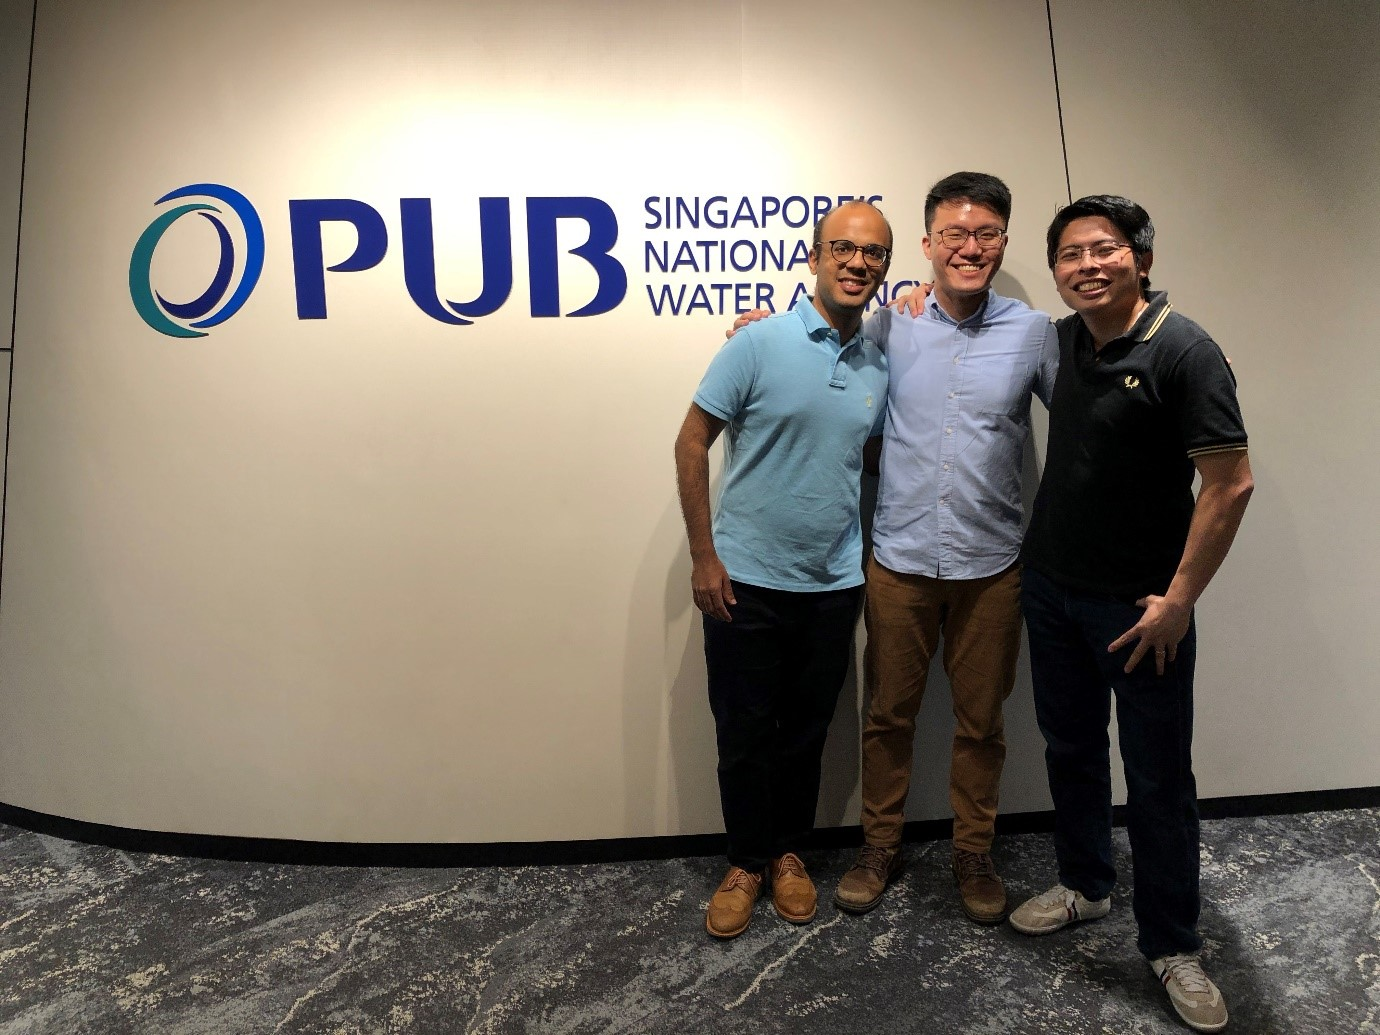 From source to sink: how data science helps Singapore manage its water resources